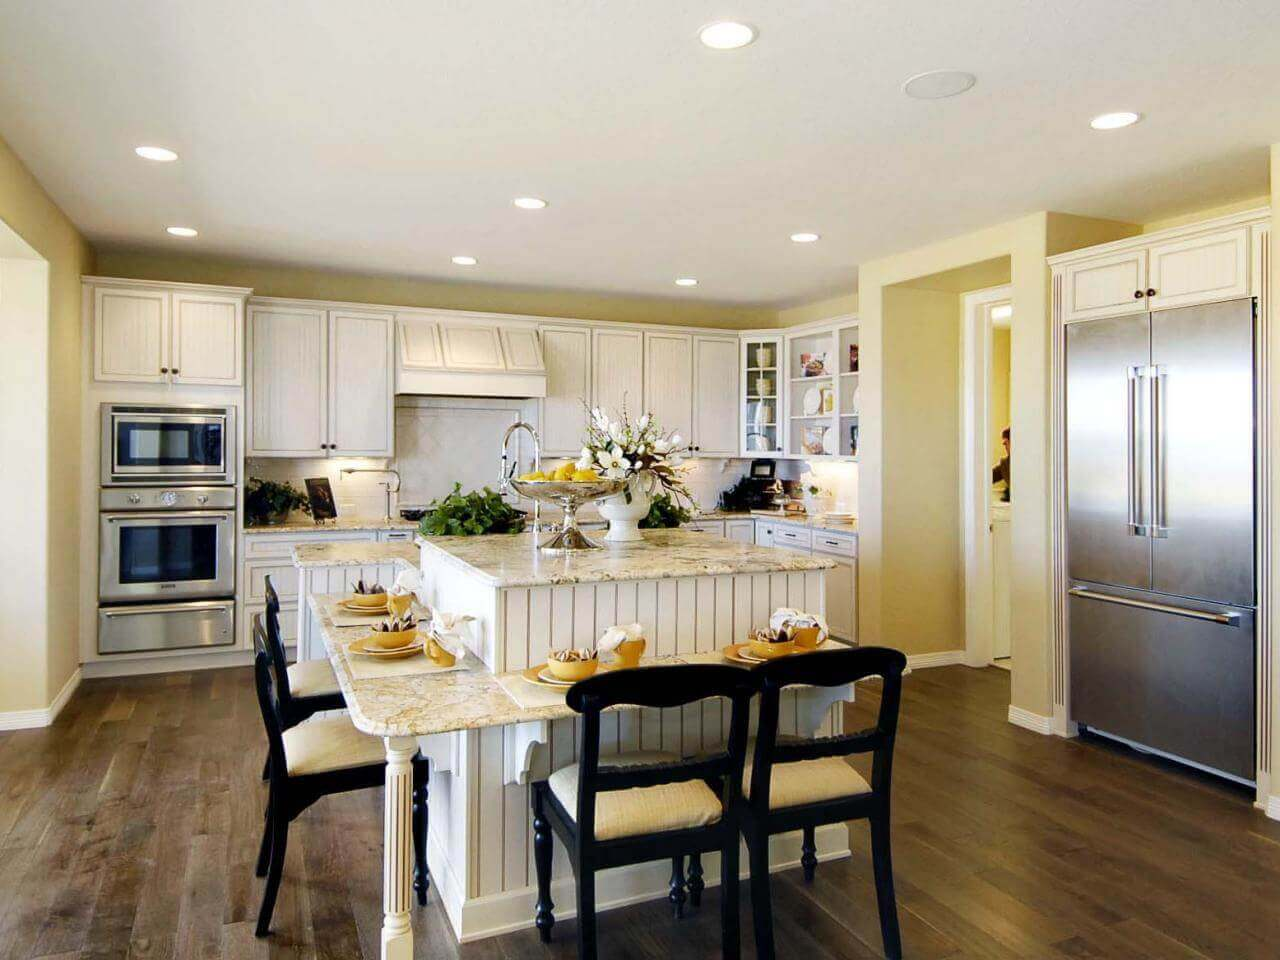 68deluxe custom kitchen island ideas jaw dropping designs home kitchen island table with chairs watchthetrailerfo